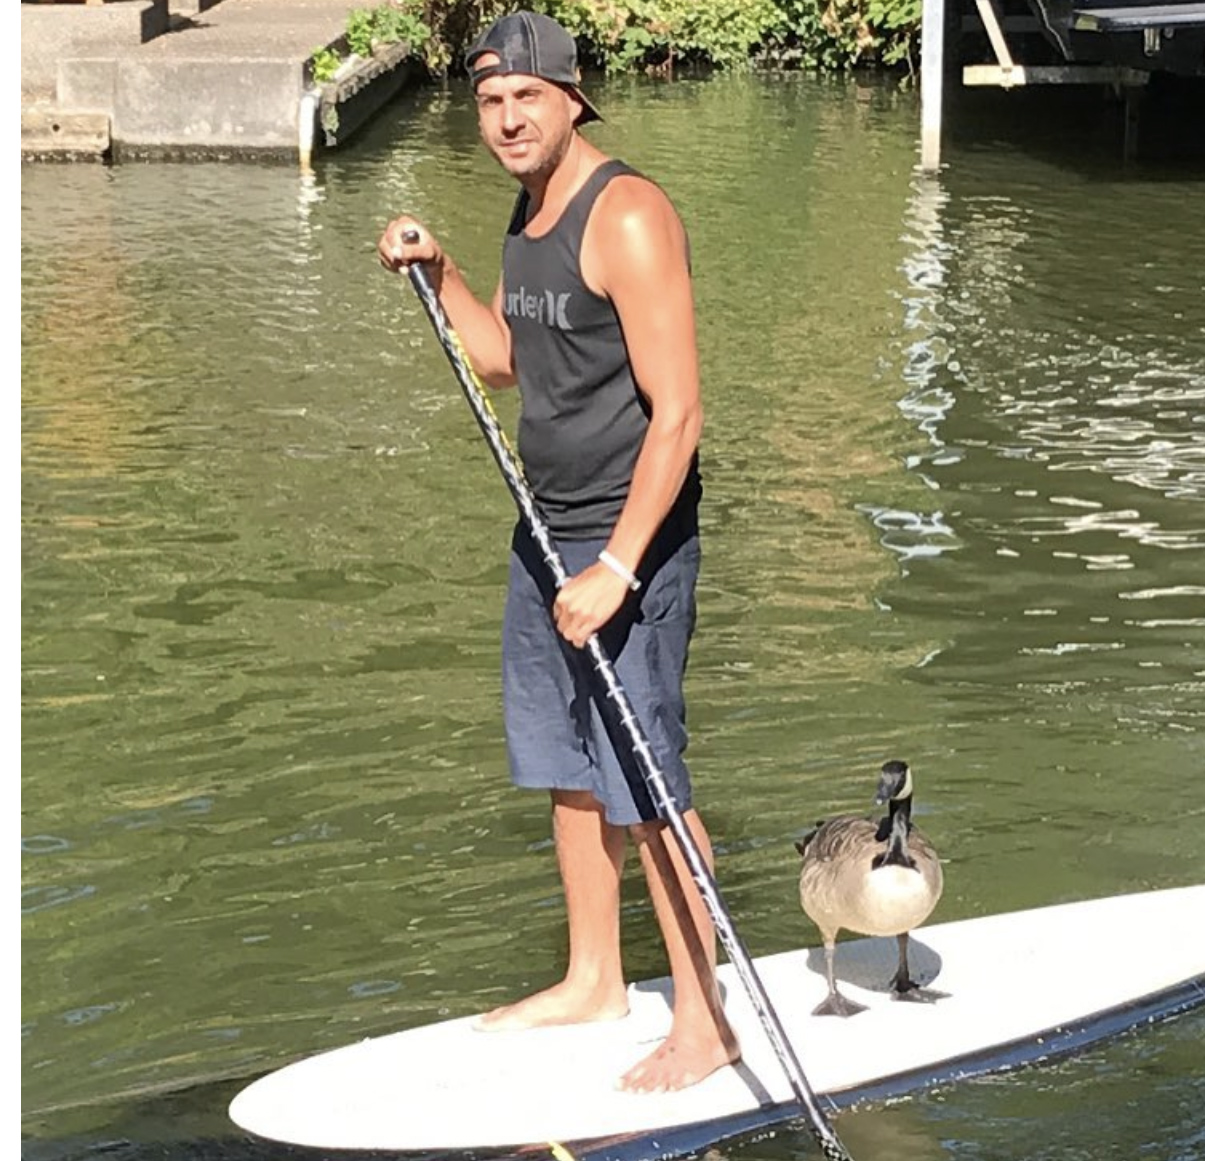 Mike and Kyle paddleboarding